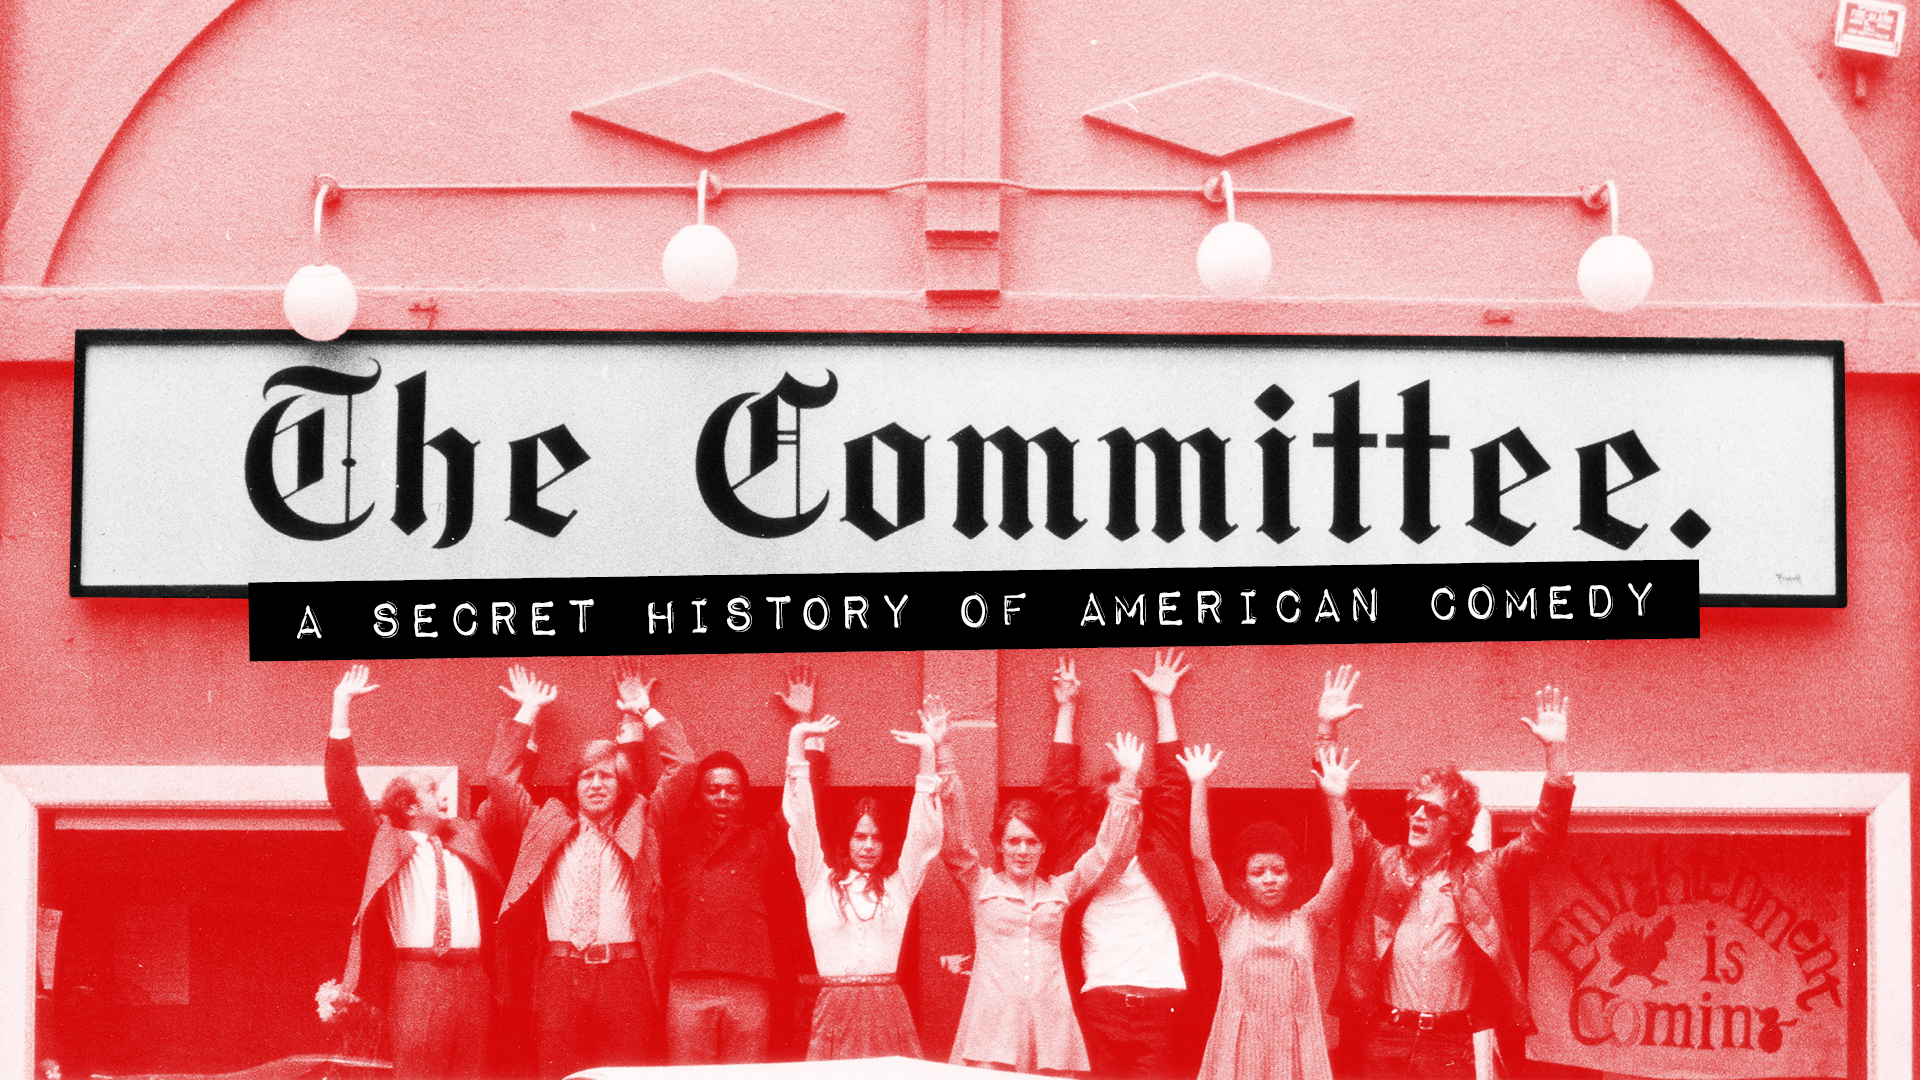 THE COMMITTEE    This documentary film series is a deep dive into the life of The Committee, San Francisco's radical comedy troupe that introduced the counterculture of the 1960s to mainstream America, pioneered an artform, and helped shape modern American satire.